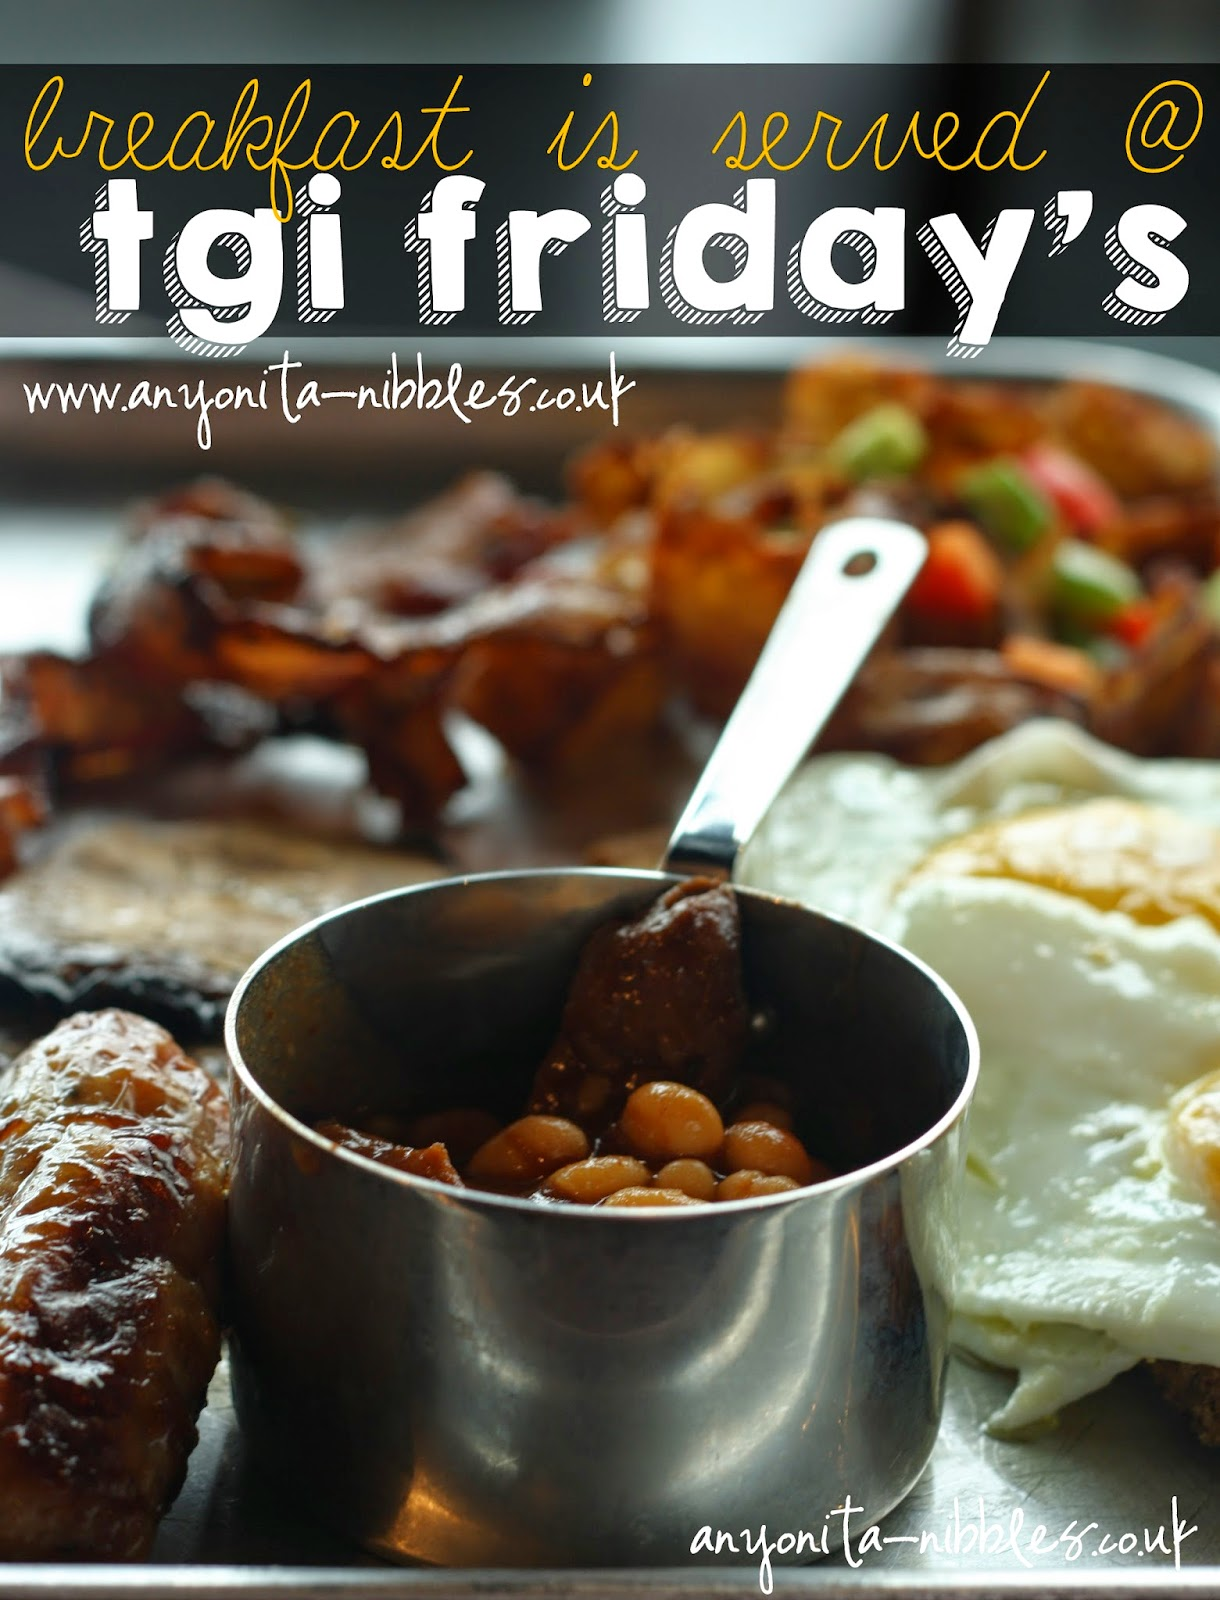 A review of the new breakfast menu at TGI Friday's at Manchester's new Fast Track train station restaurant | Anyonita-nibbles.co.uk